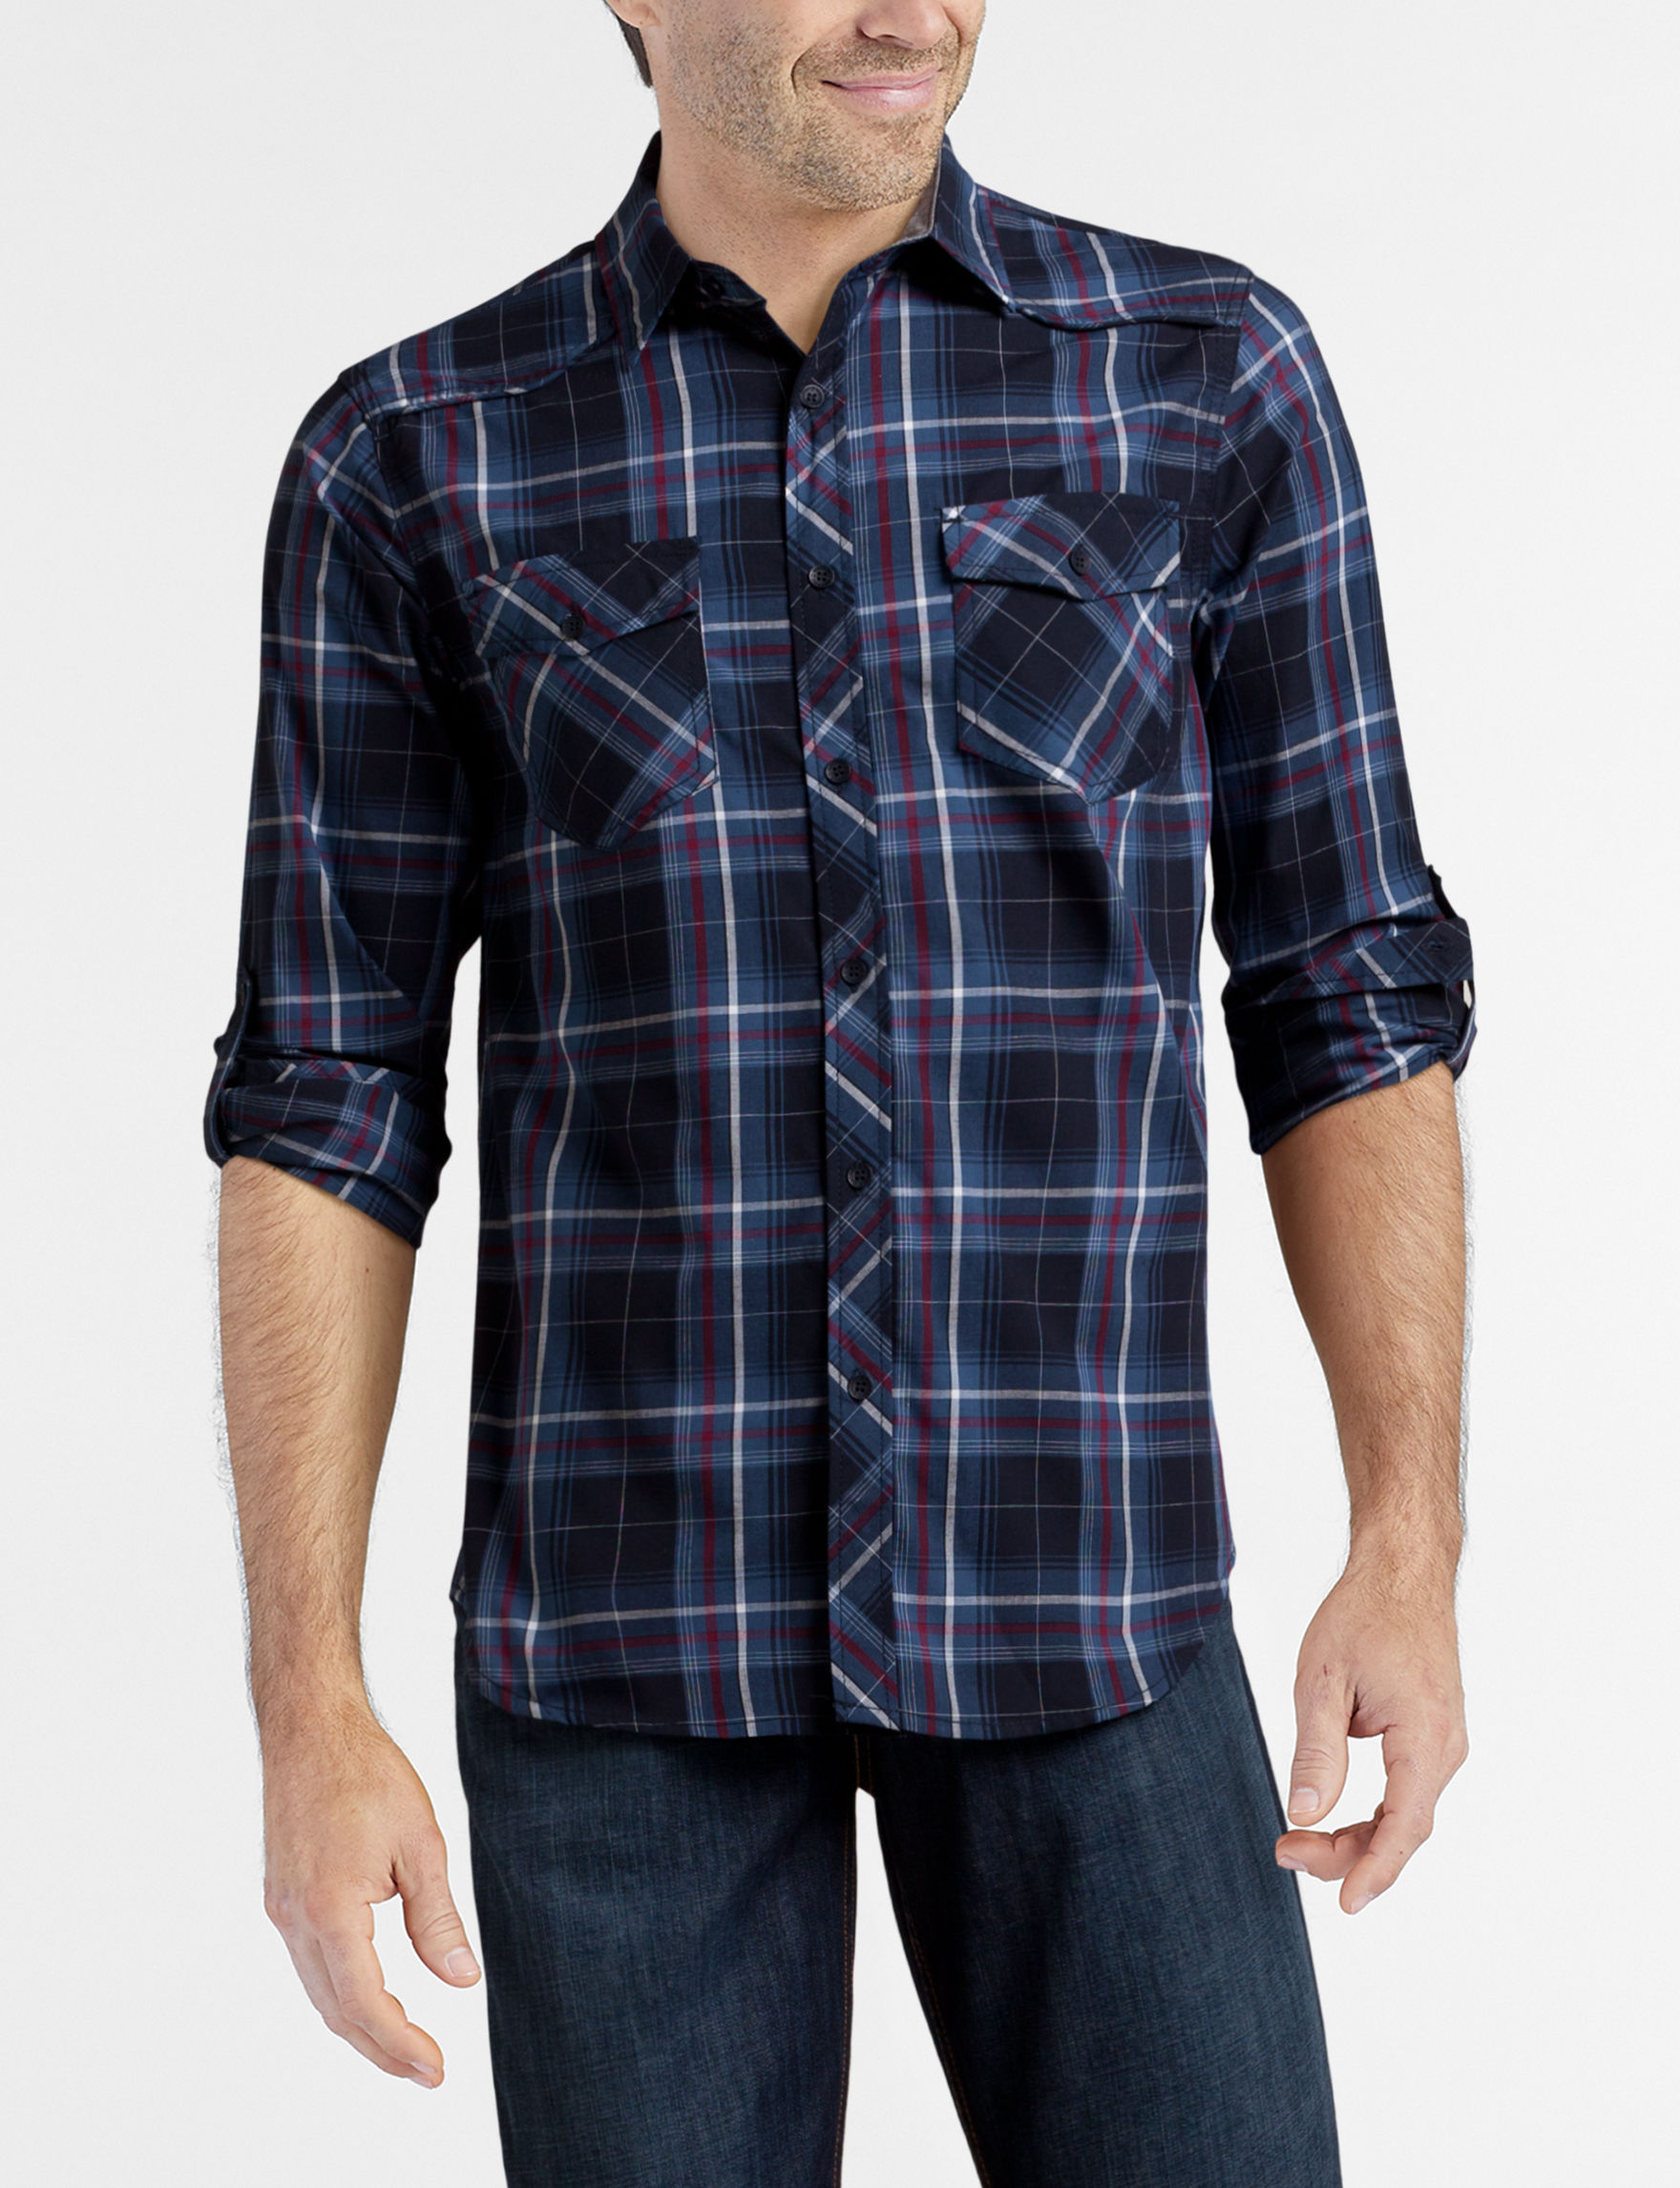 Rustic Blue Navy Plaid Casual Button Down Shirts